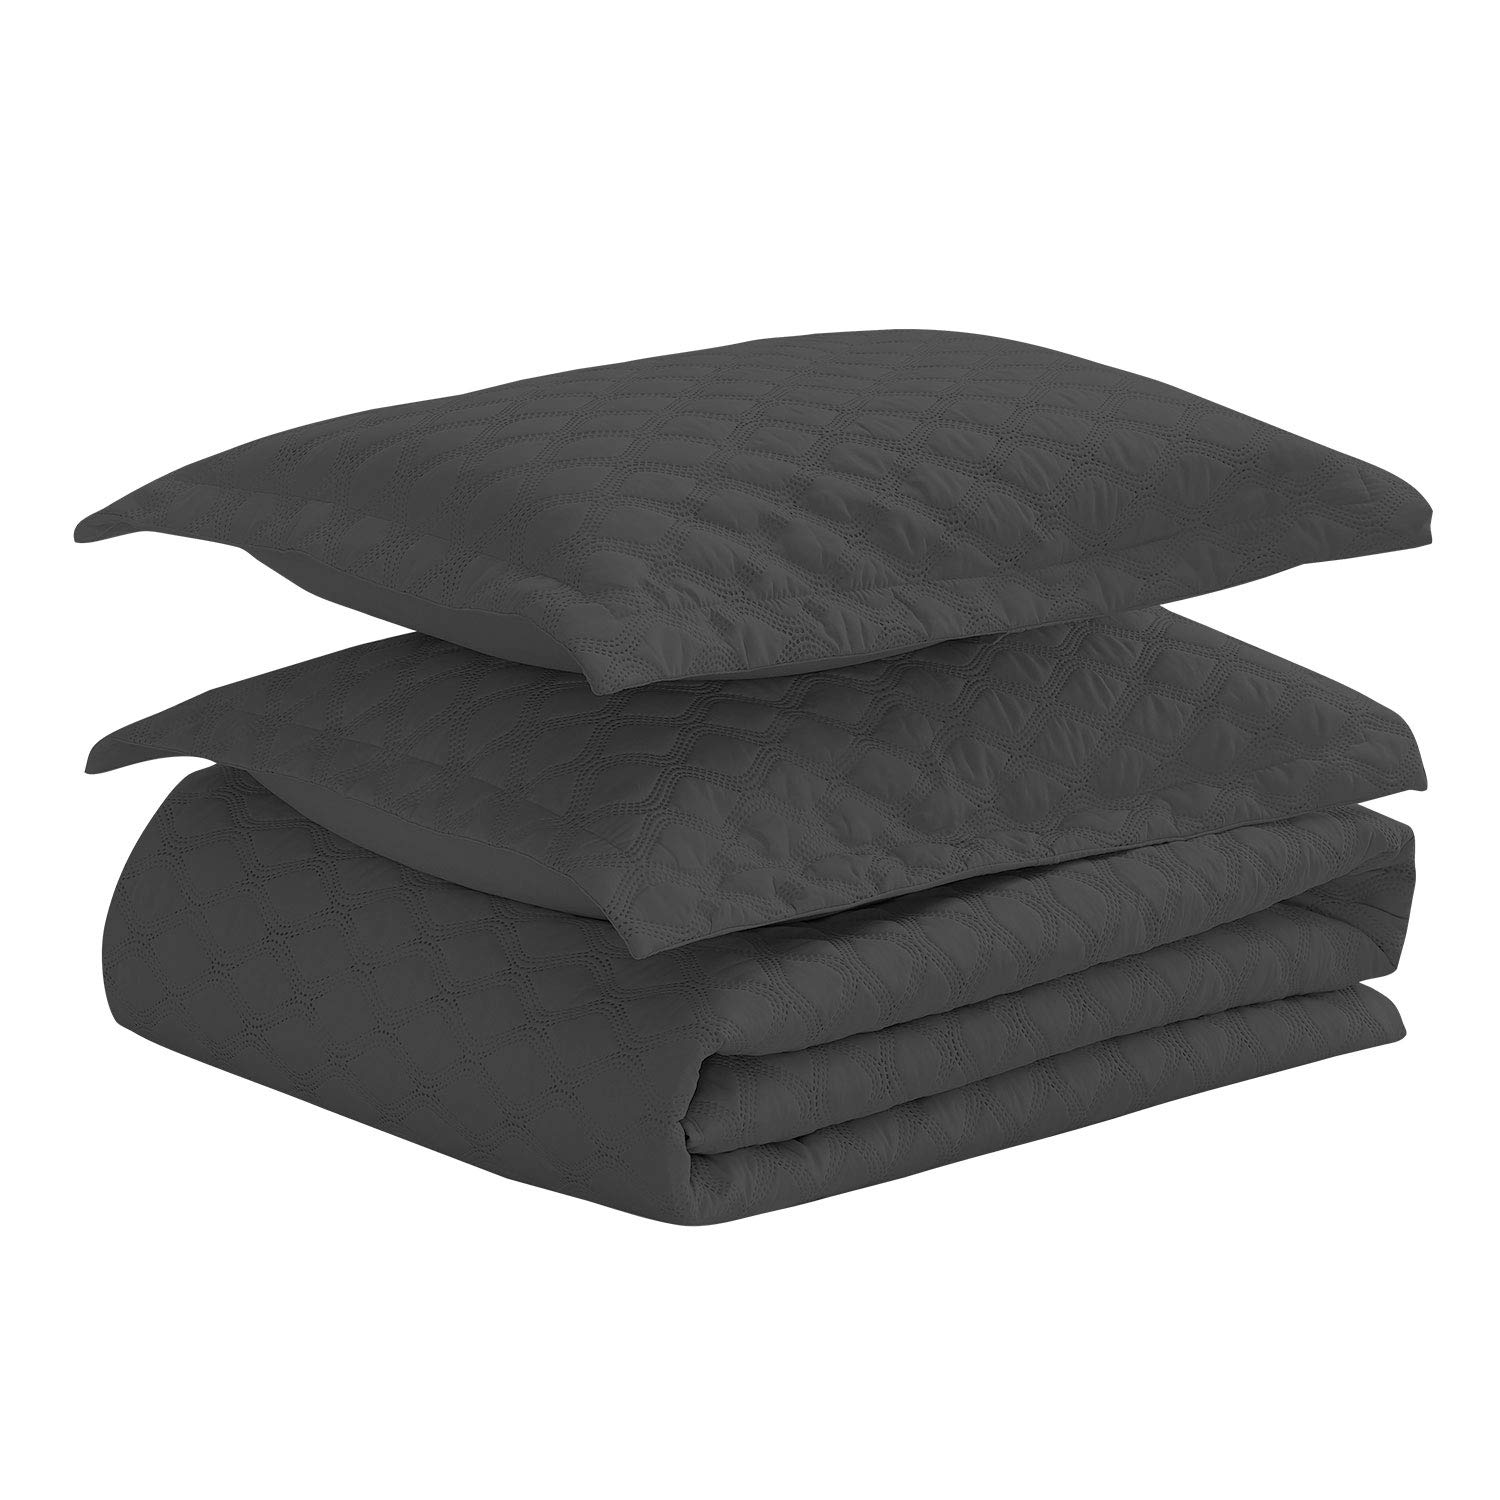 Basic Choice 3-piece Oversized Quilted Bedspread Coverlet Set - Black, King/California King